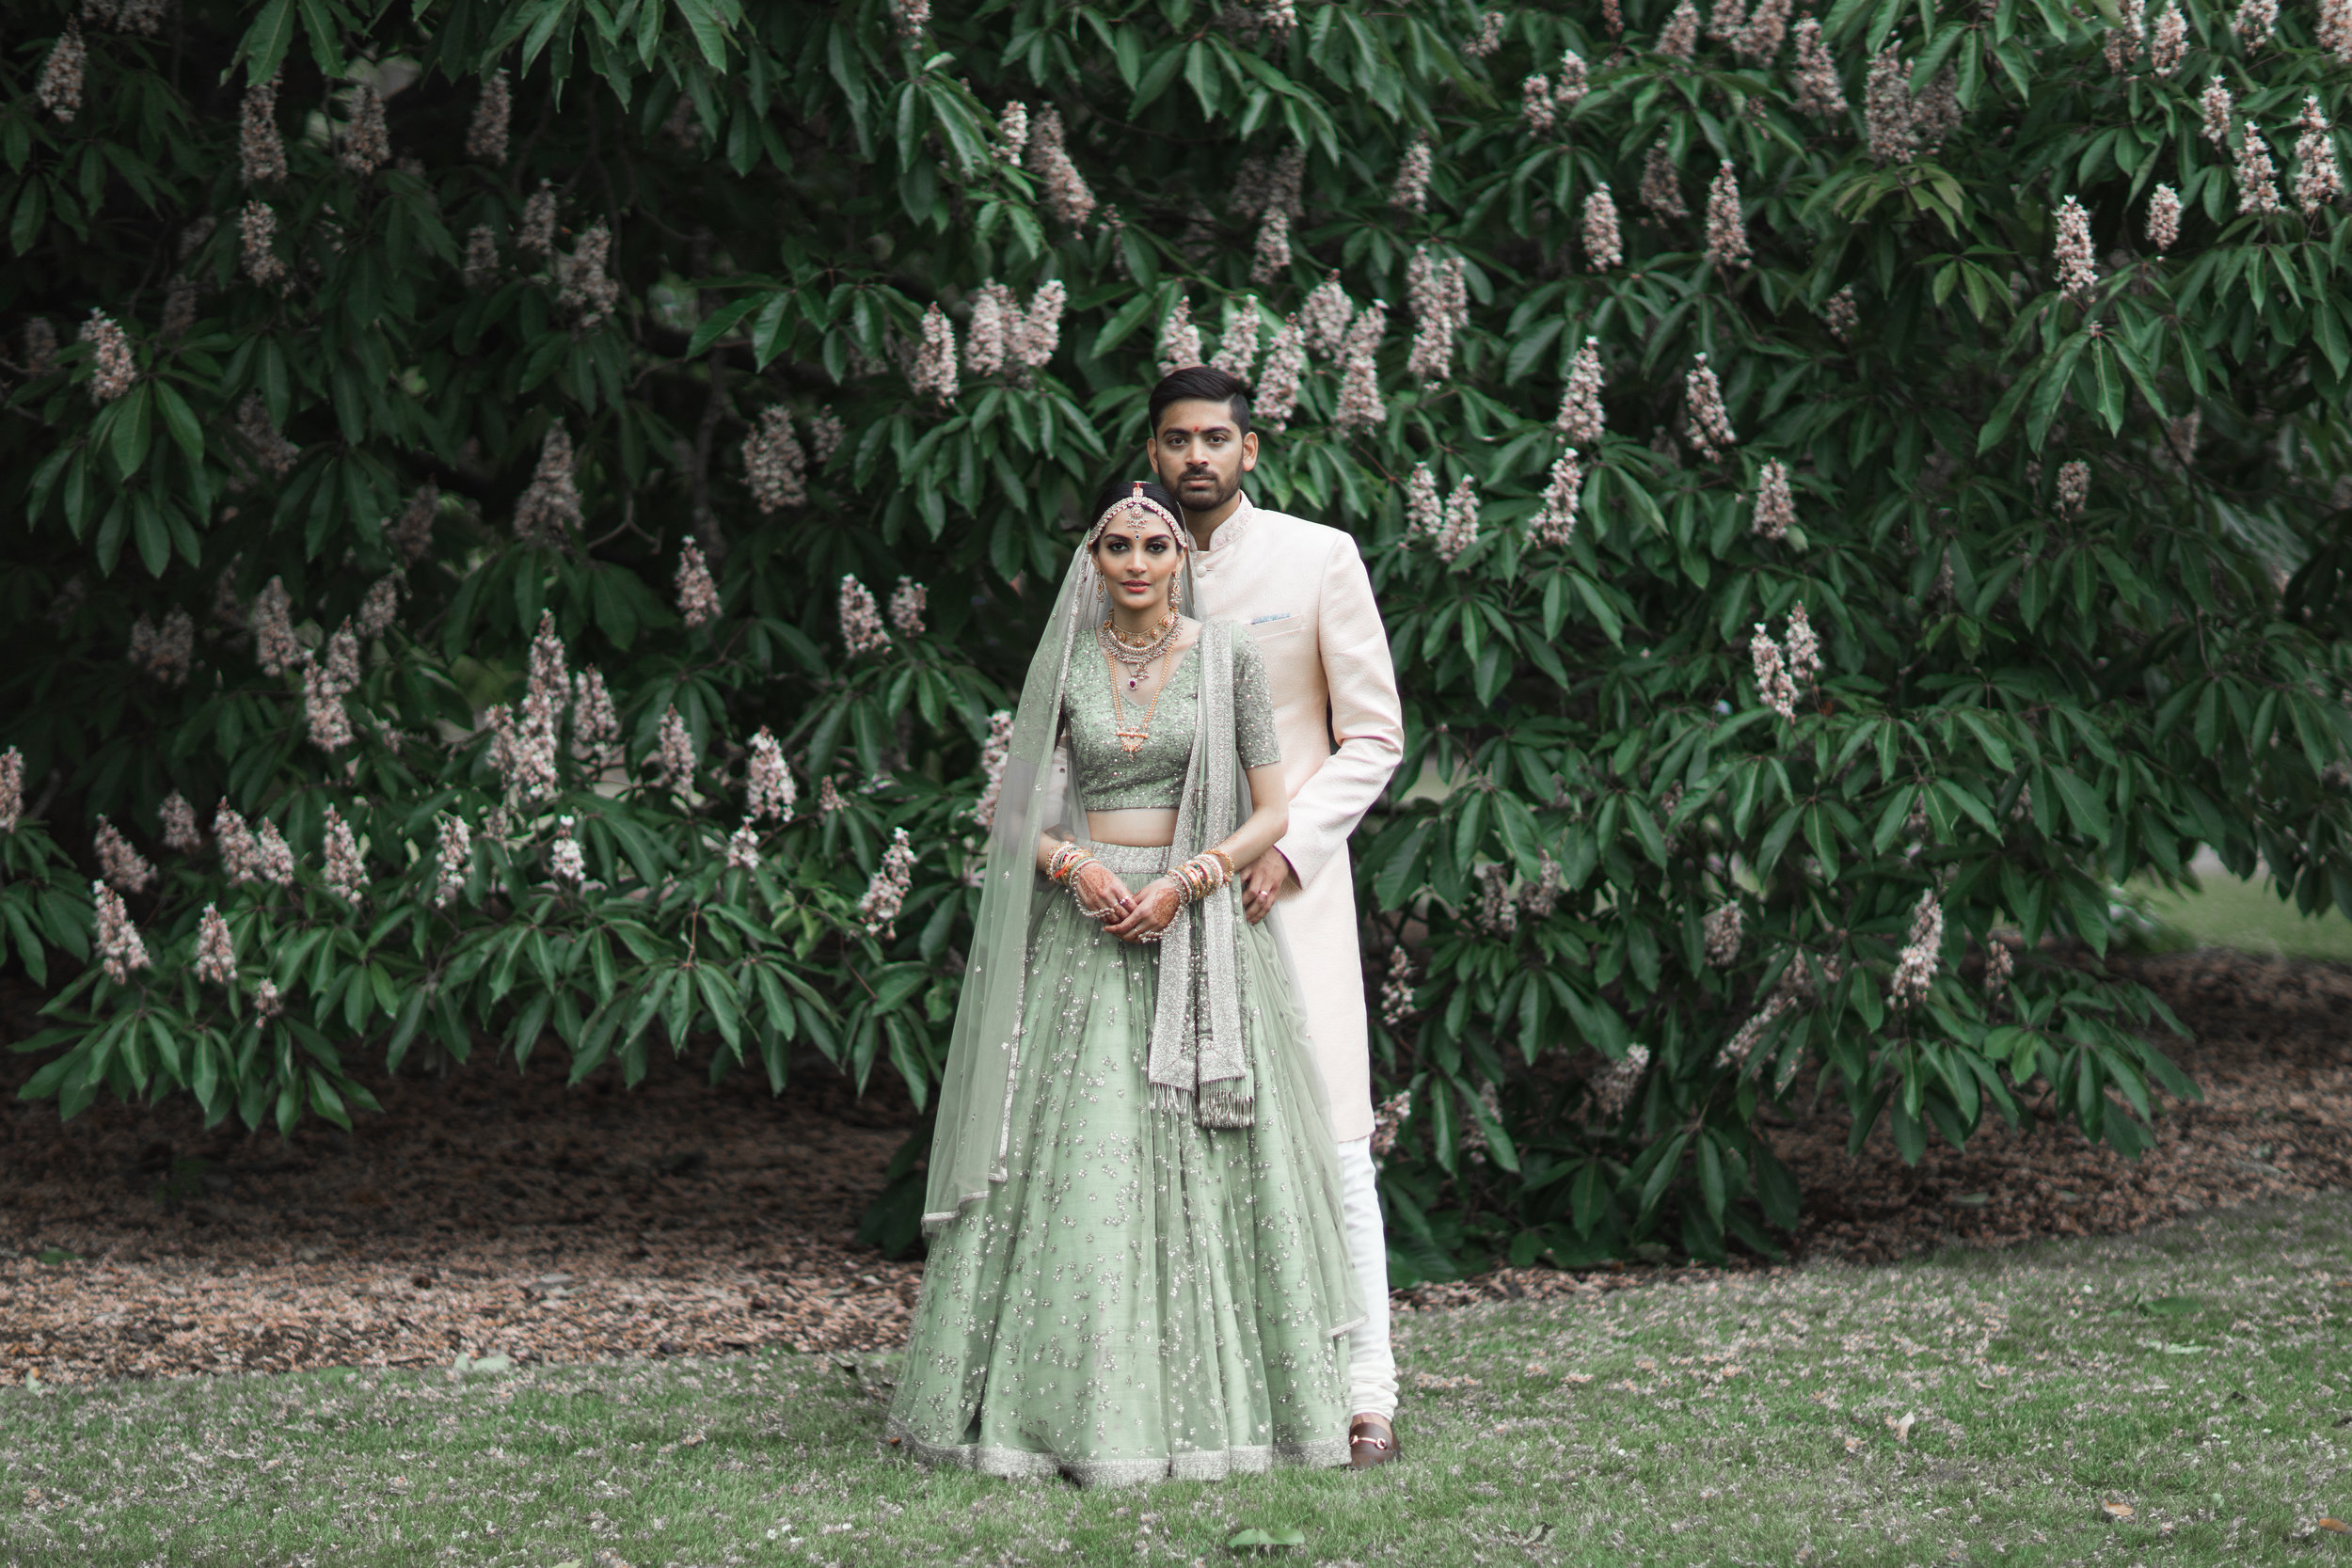 Indian Wedding Photographer London  Zohaib Ali.jpg